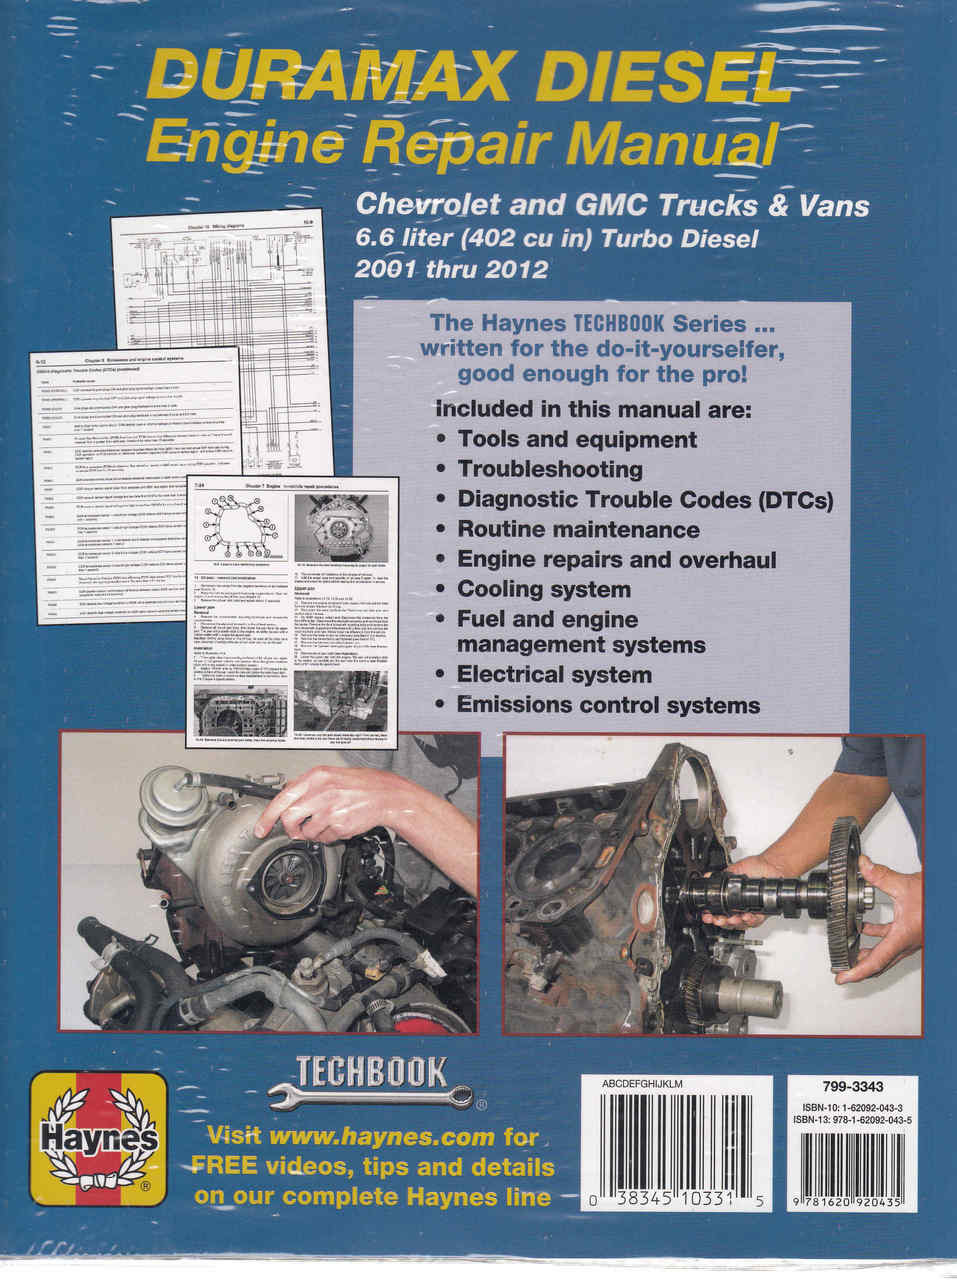 duramax diesel engine repair manual techbook series rh automotobookshop com  au 2001 chevrolet silverado 2500hd repair manual 2001 chevrolet ...